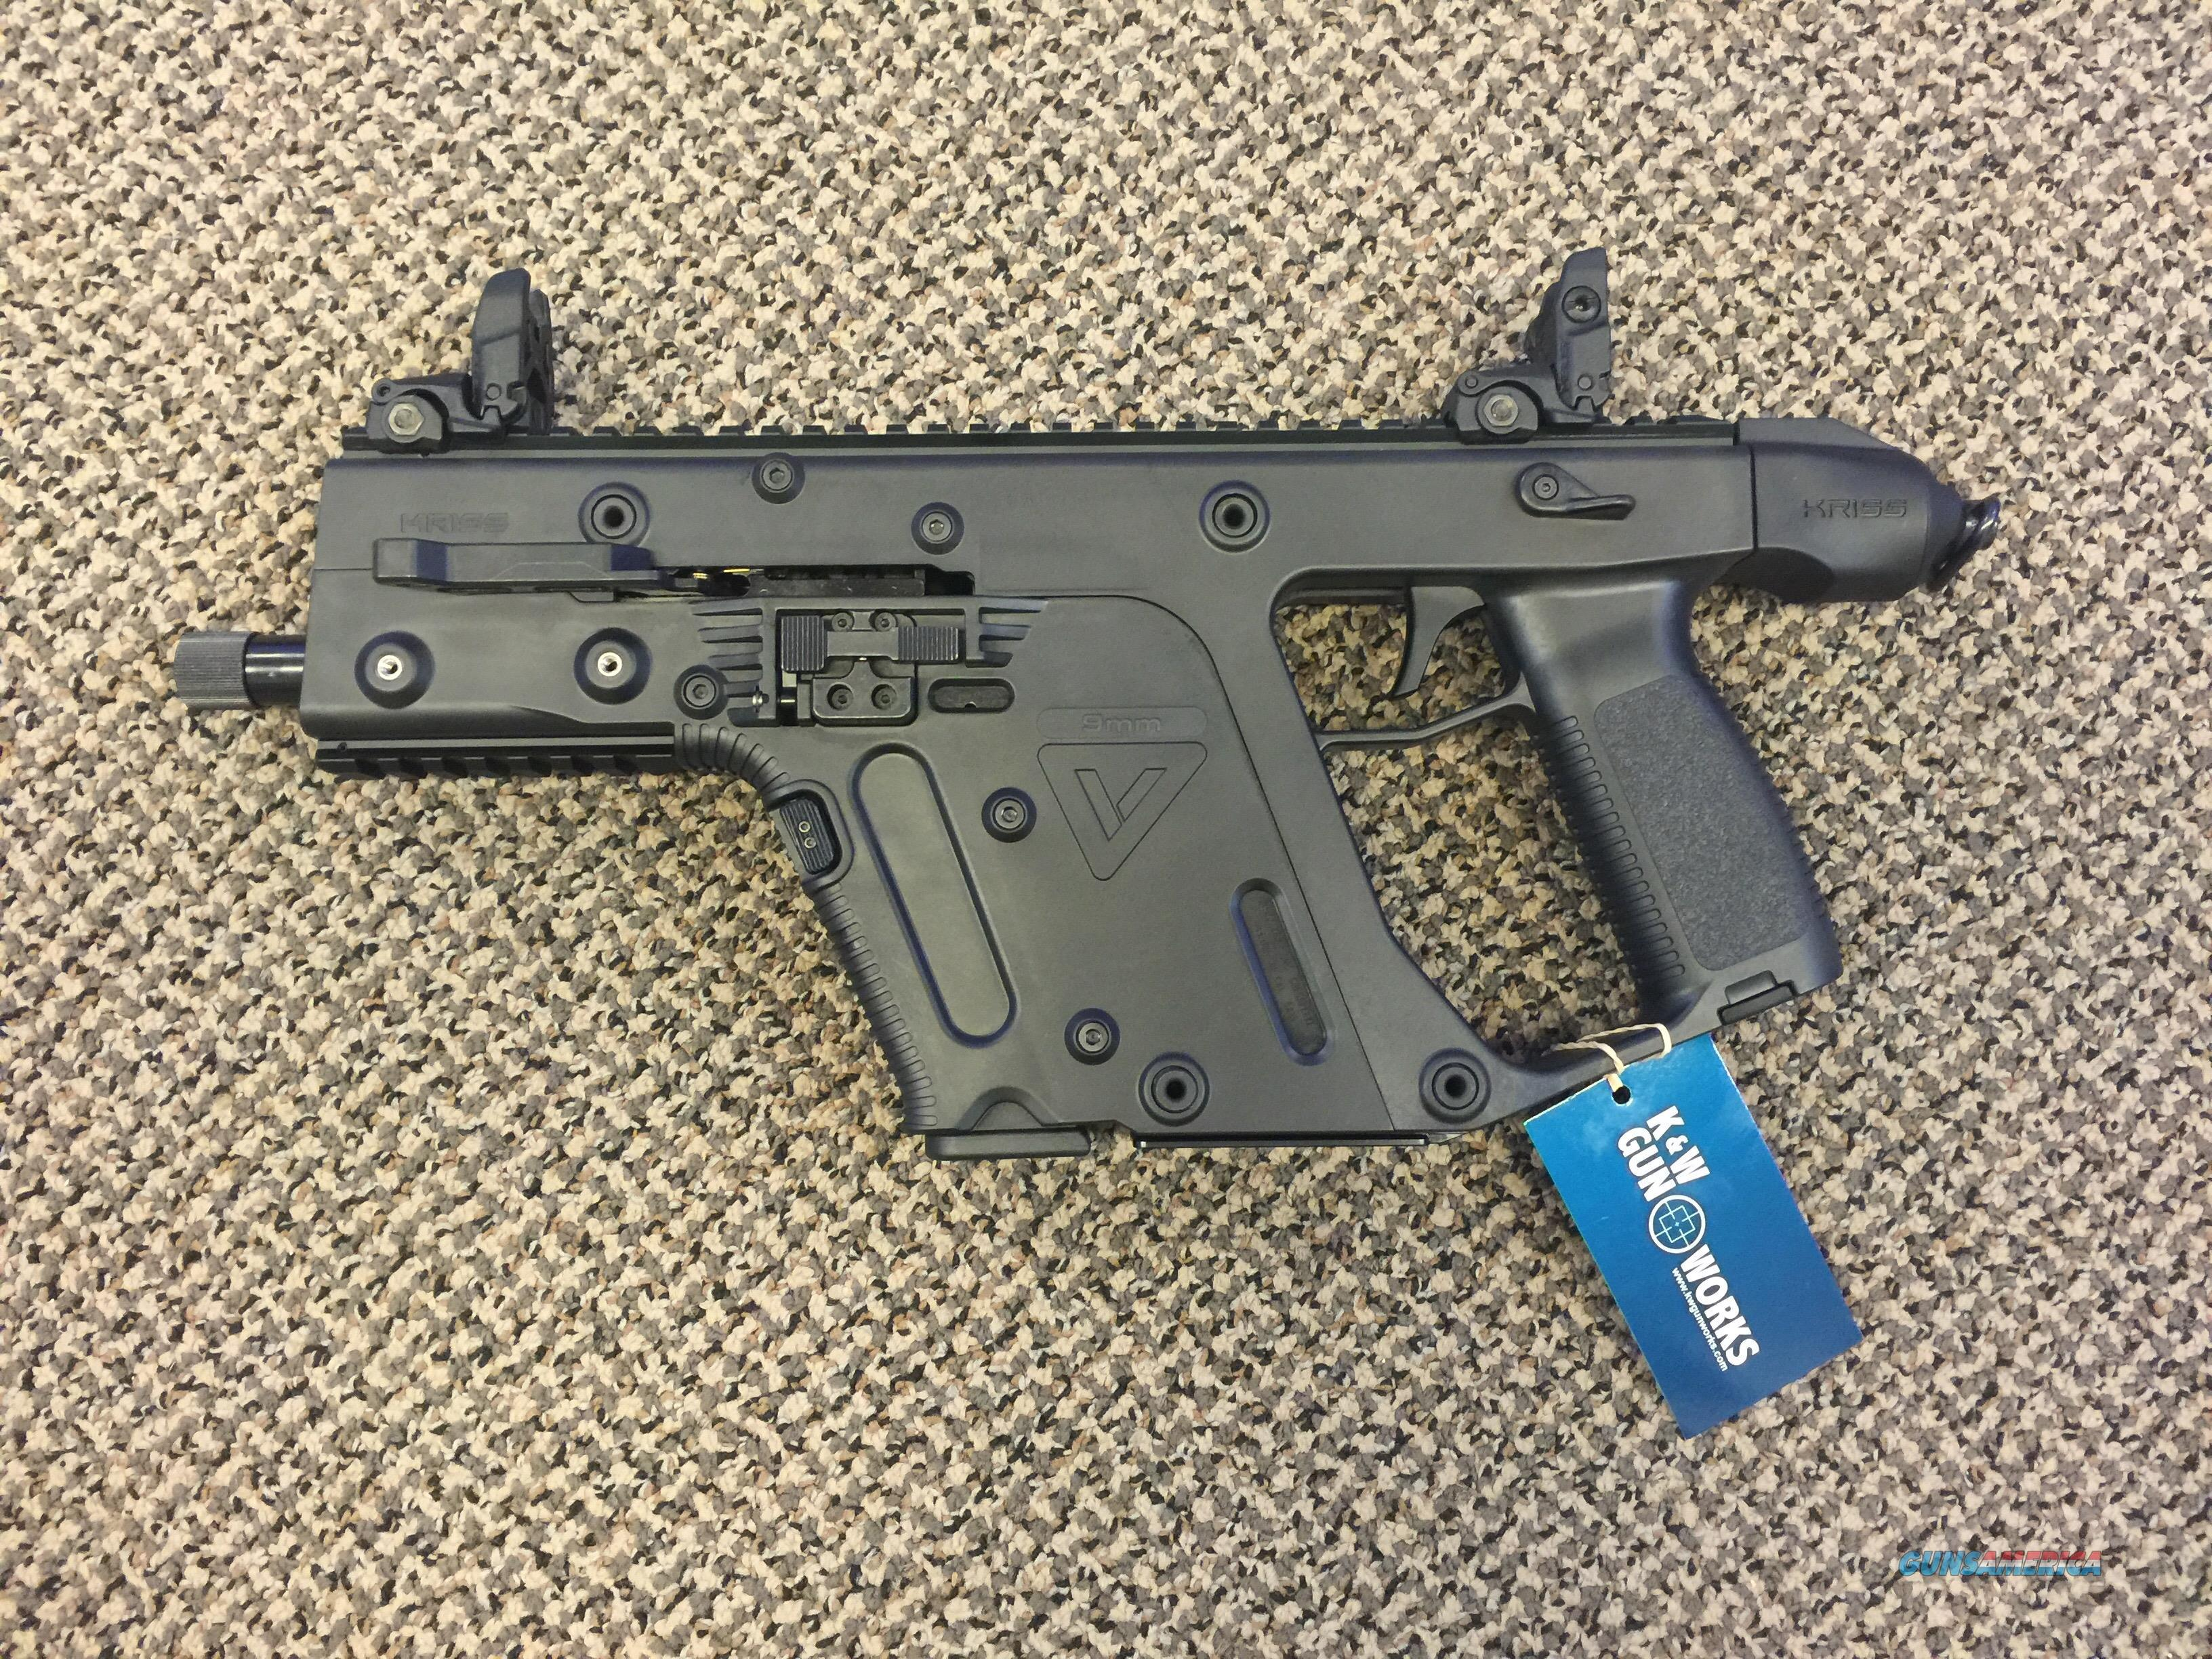 KRISS VECTOR SDP GENERATION TWO 9MM PISTOL MINT 50 ROUNDS ONLY FIRED!  Guns > Pistols > Kriss Tactical Pistols